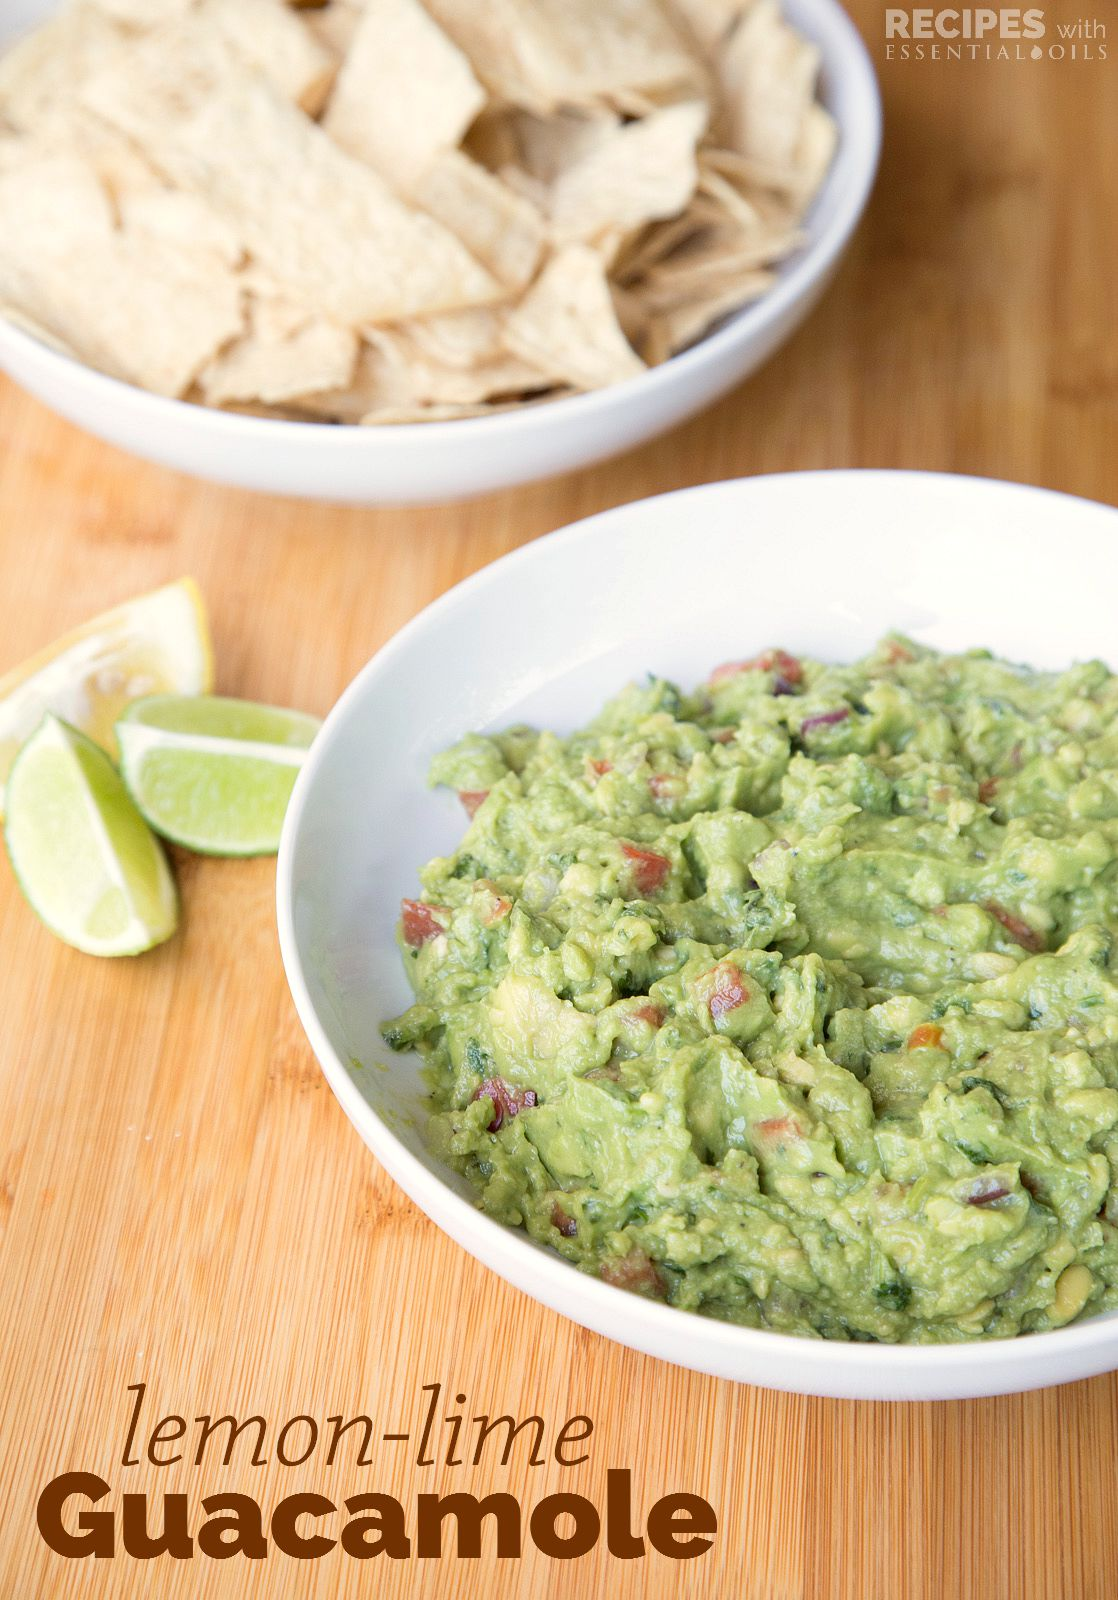 Homemade Lemon Lime Guacamole from RecipesWithEssentialOils.com